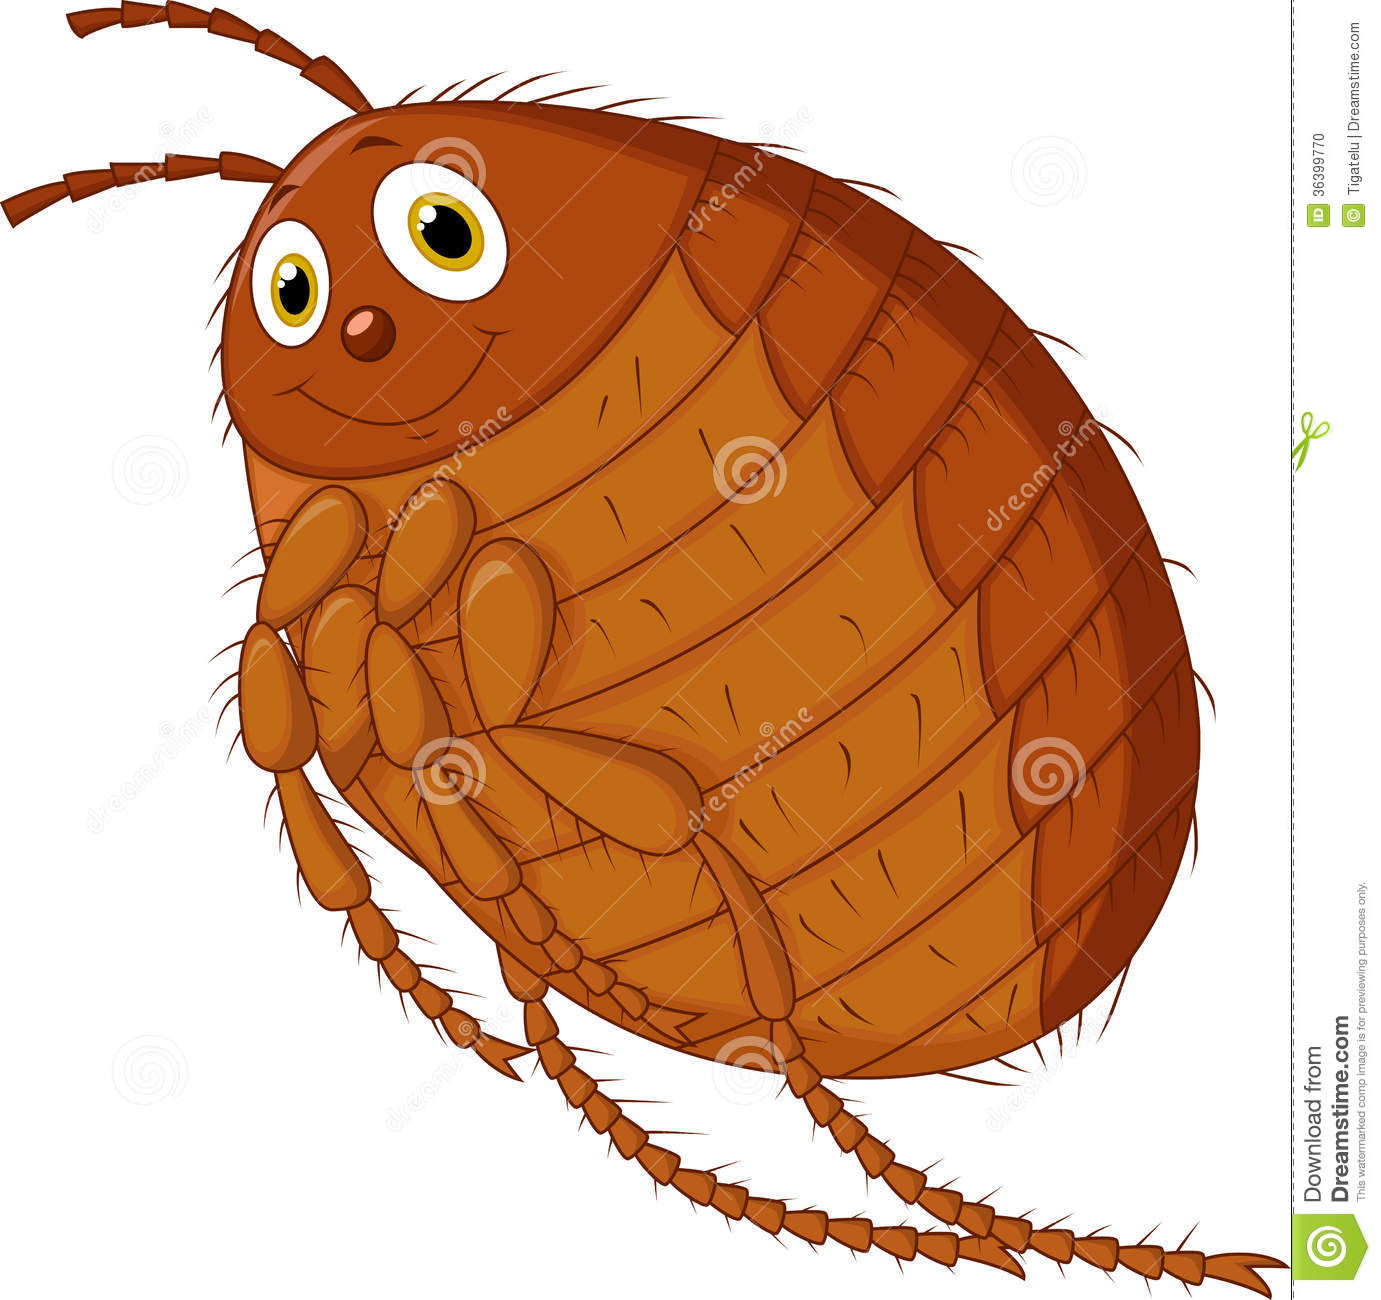 Flea Cartoon Stock Photo - Image: 36399770